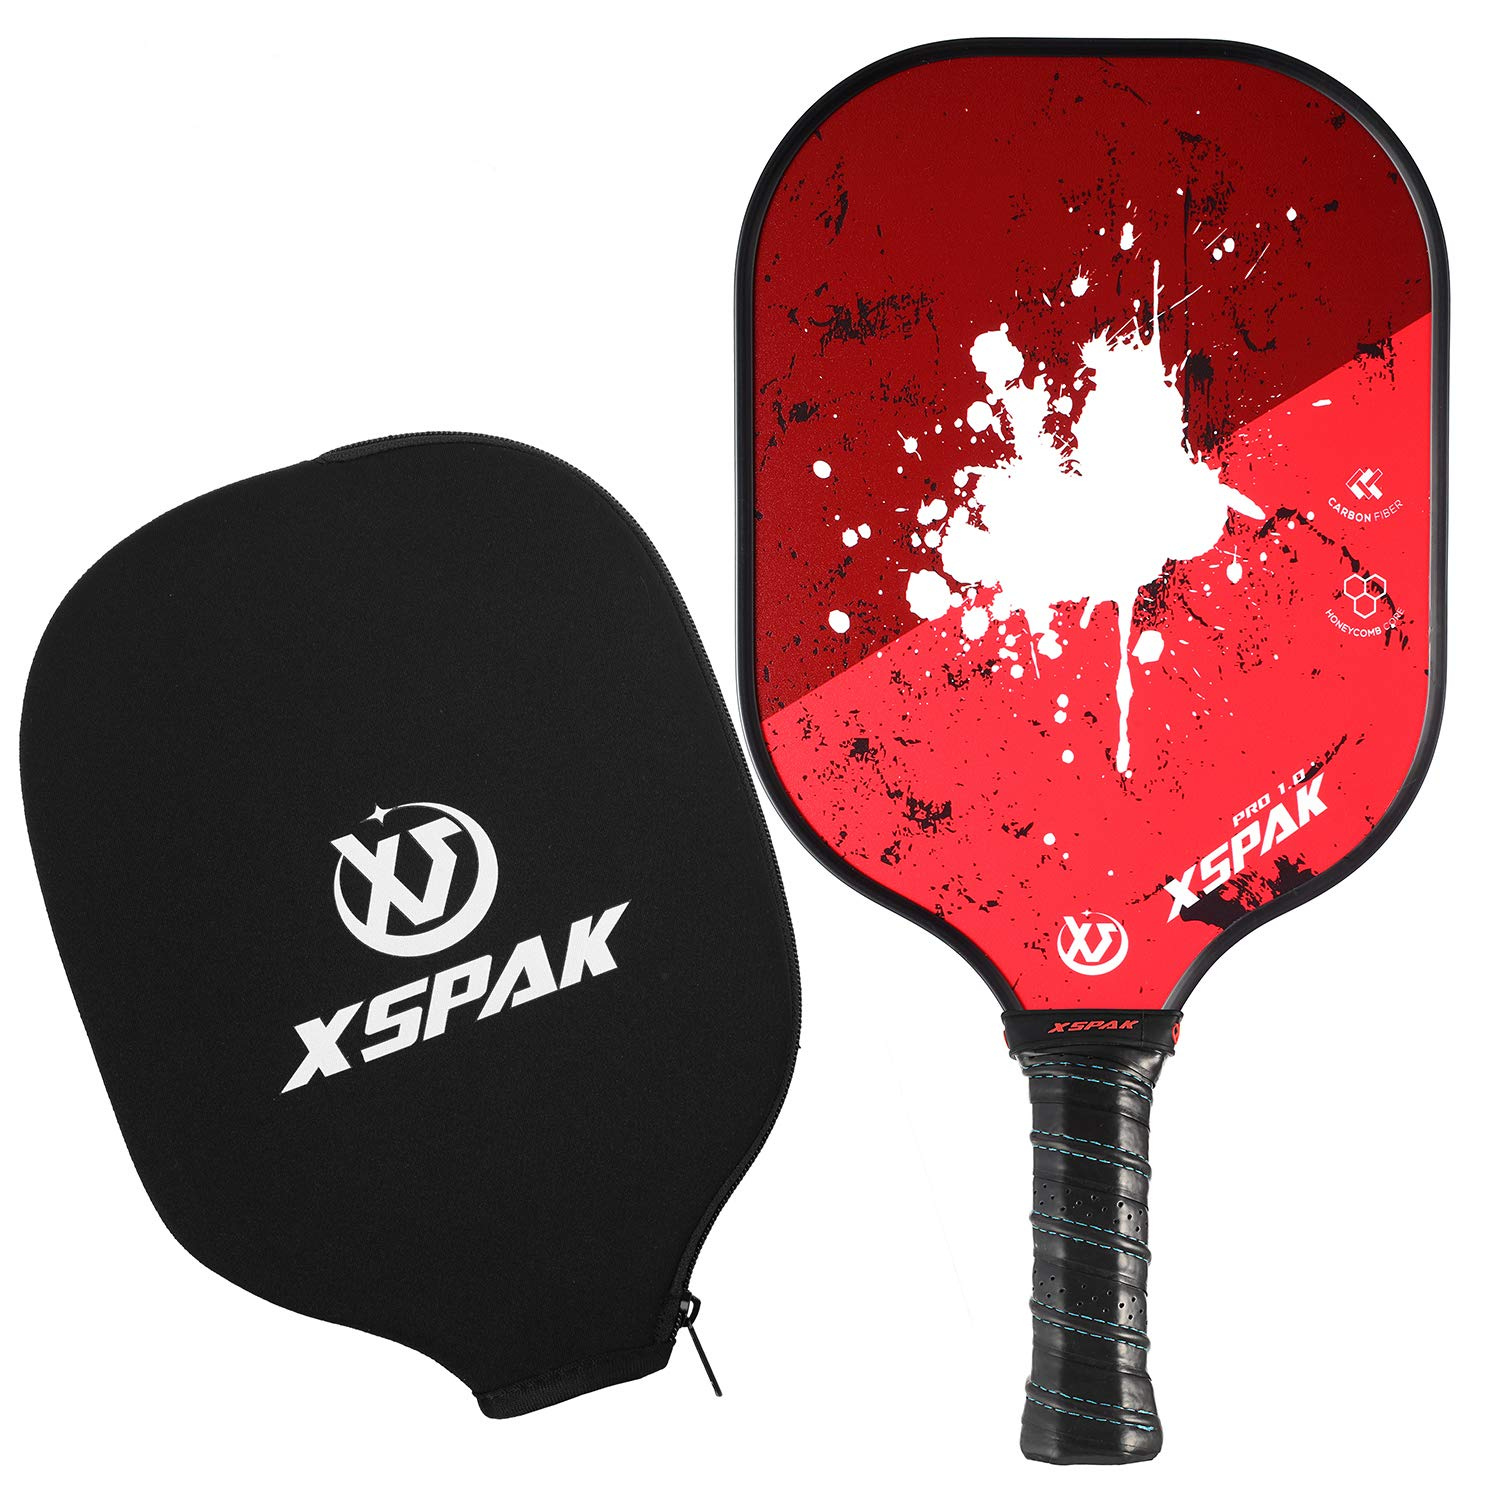 XS XSPAK Pickleball Paddle - Lightweight Graphite/Carbon Fiber Face & Polypropylene Honeycomb Composite Core Paddles Including Racket Cover, USAPA Approved, Red by XS XSPAK